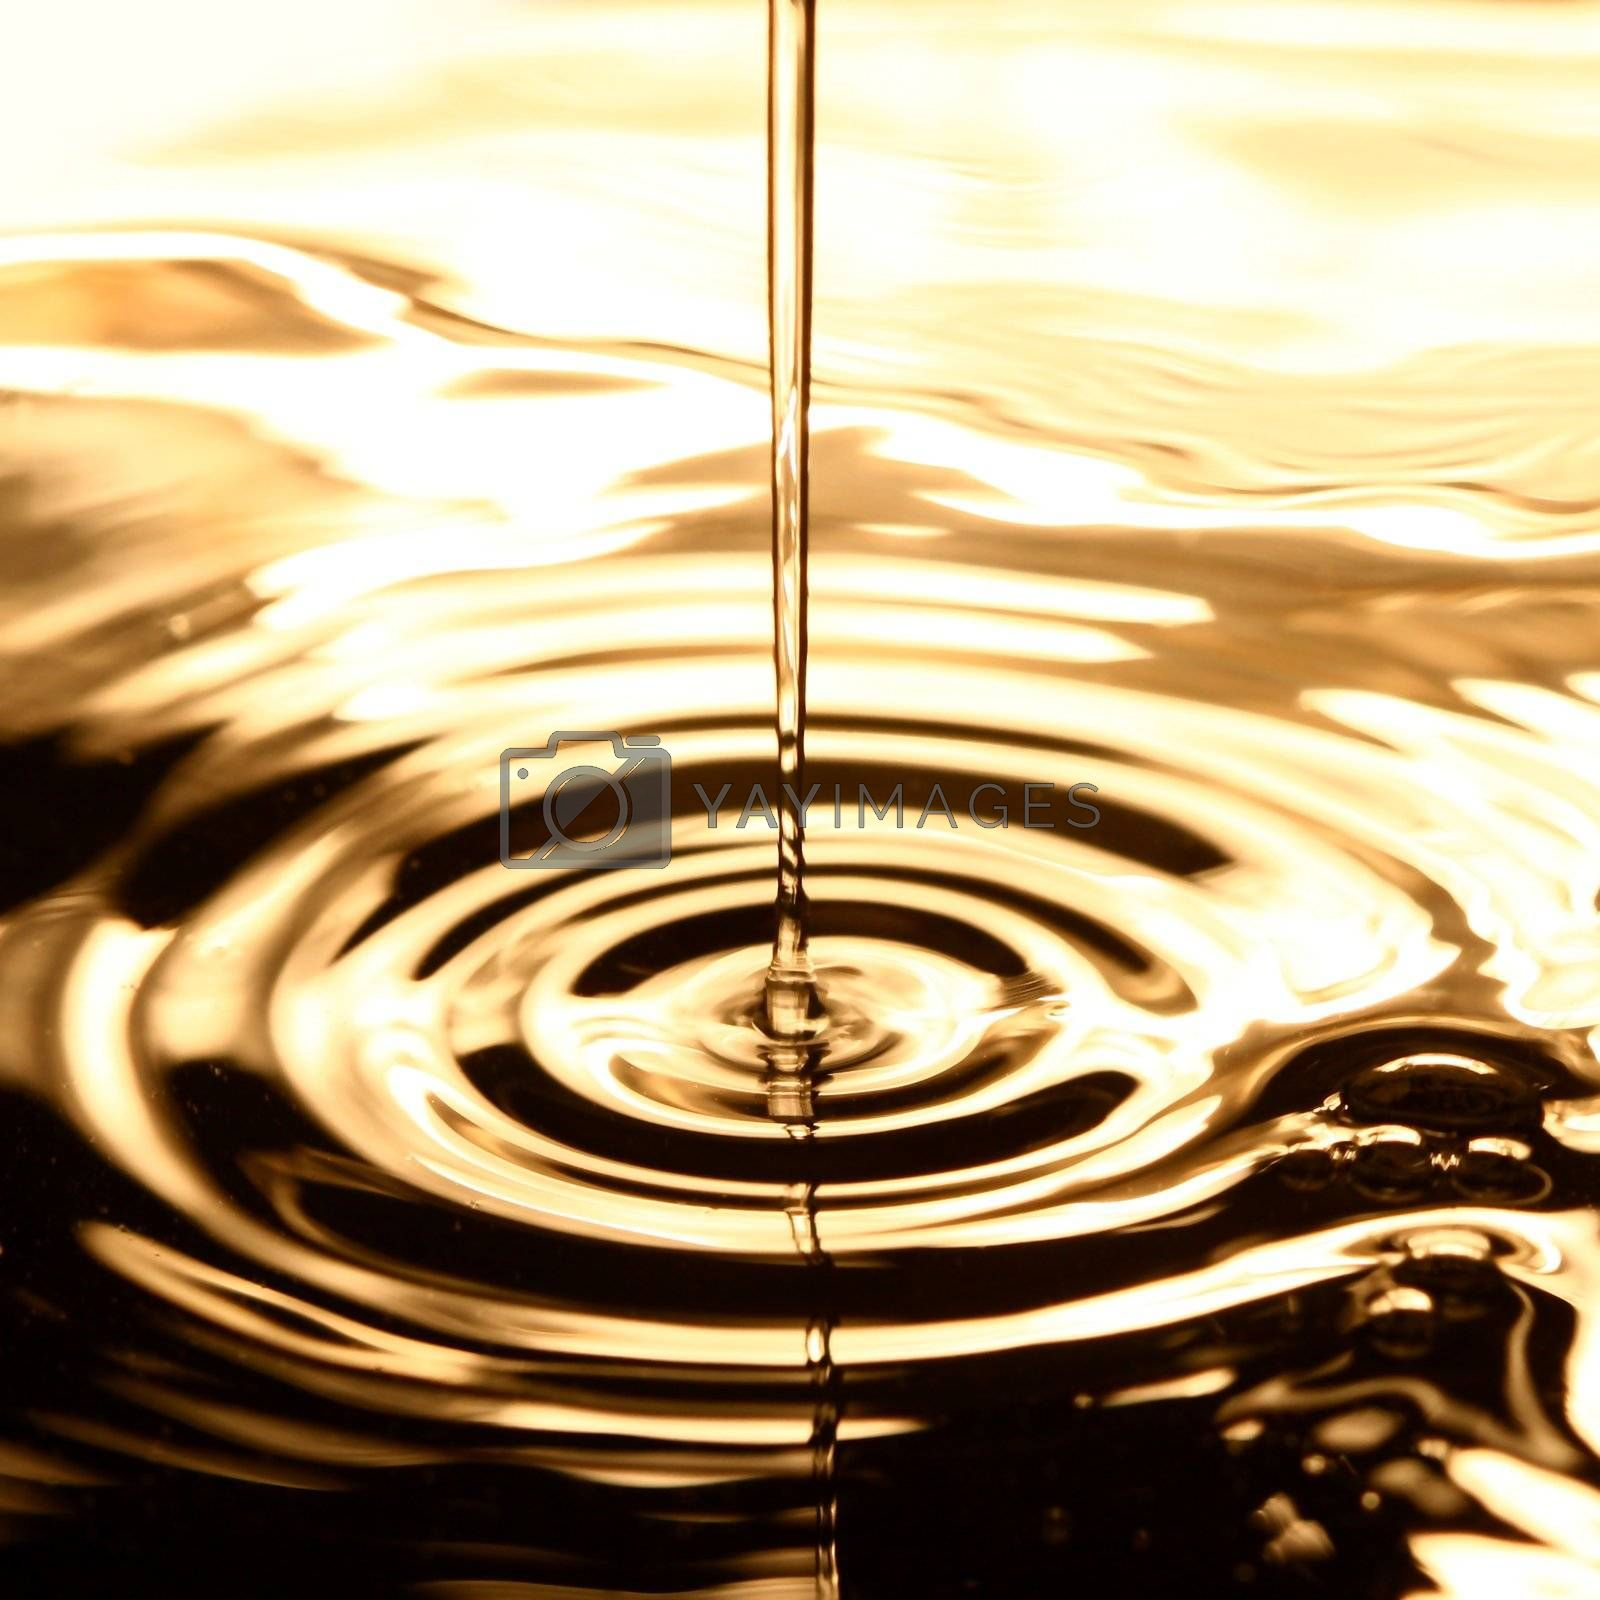 clean motion water concept abstract background